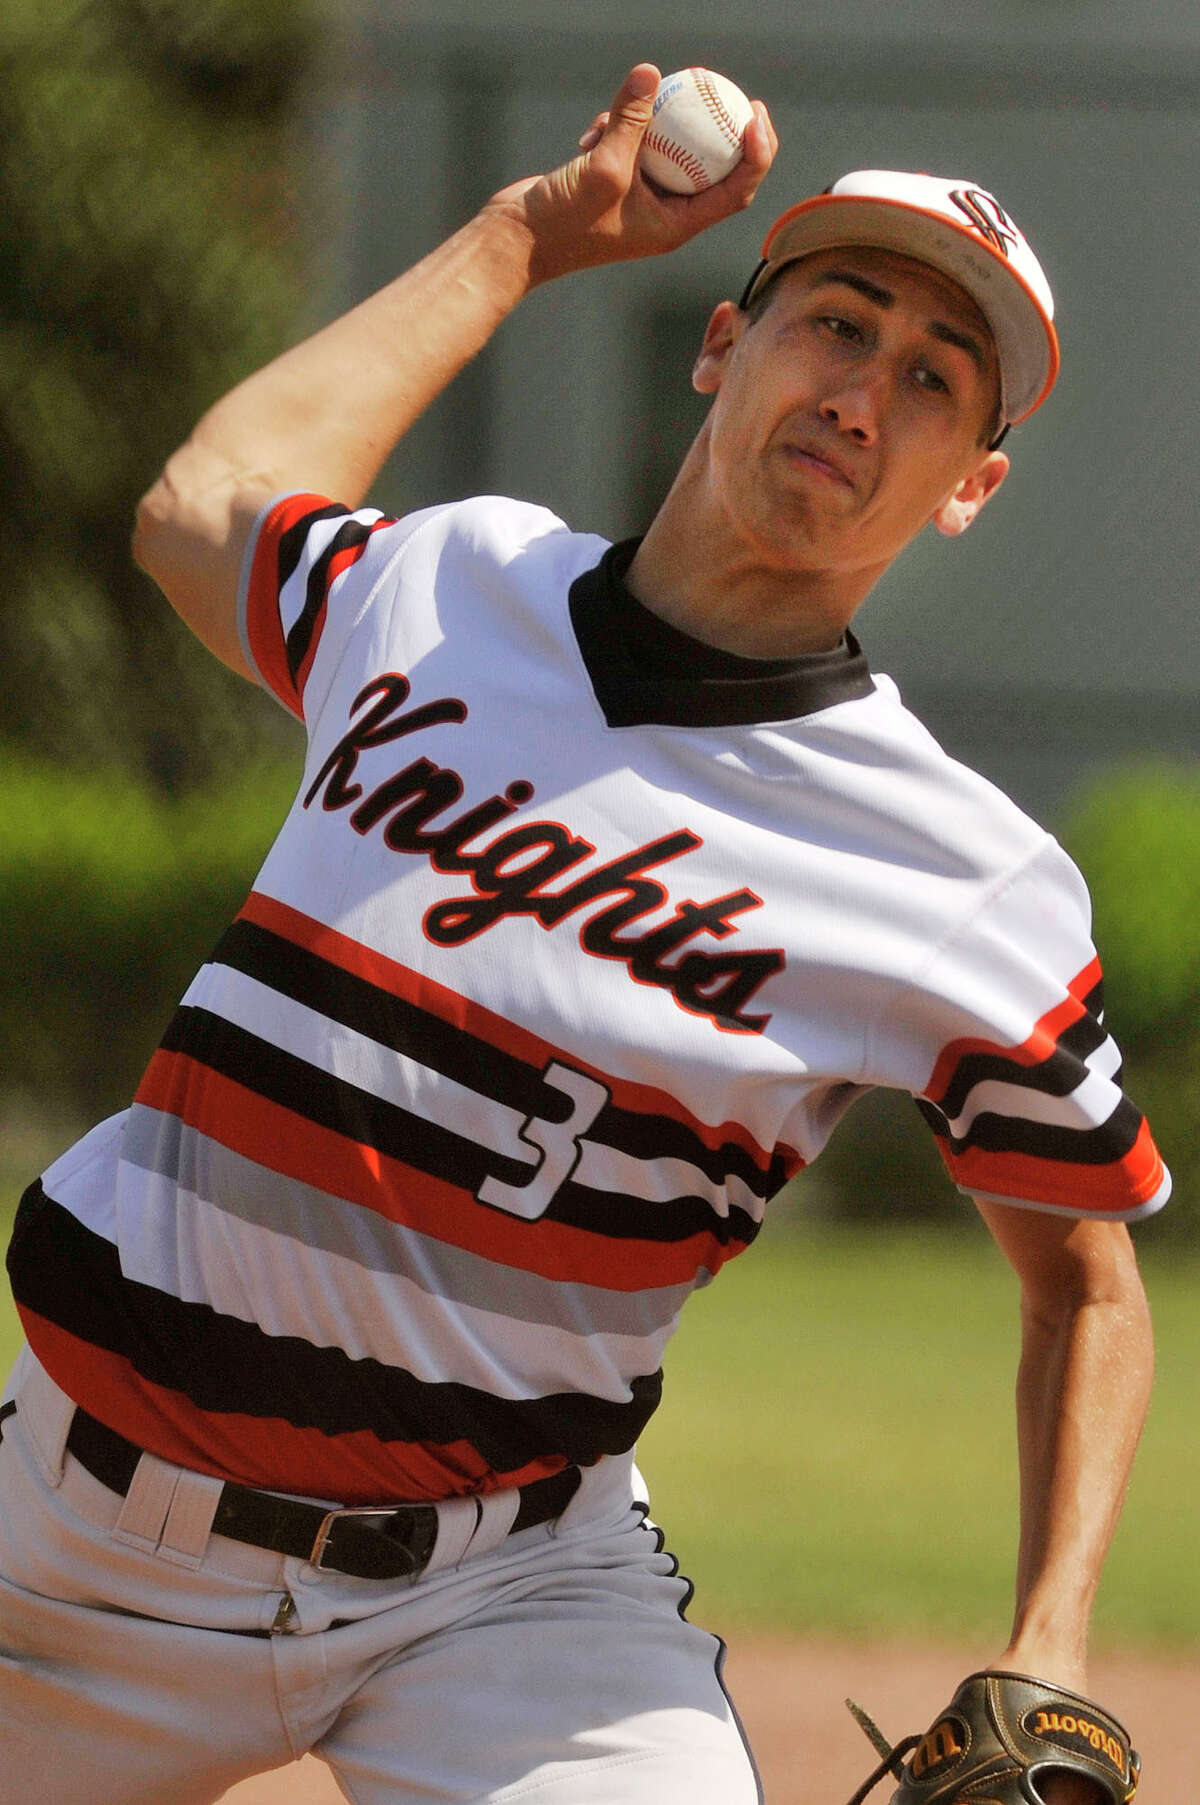 Stamford's Billy DeVito pitches during the Black Knights' Class LL first round state playoff game against Naugatuck at Stamford High School in Stamford, Conn., on Wednesday, June 3, 2015. Stamford won, 5-4 and will face Fairfield Prep on Thursday, June 4.